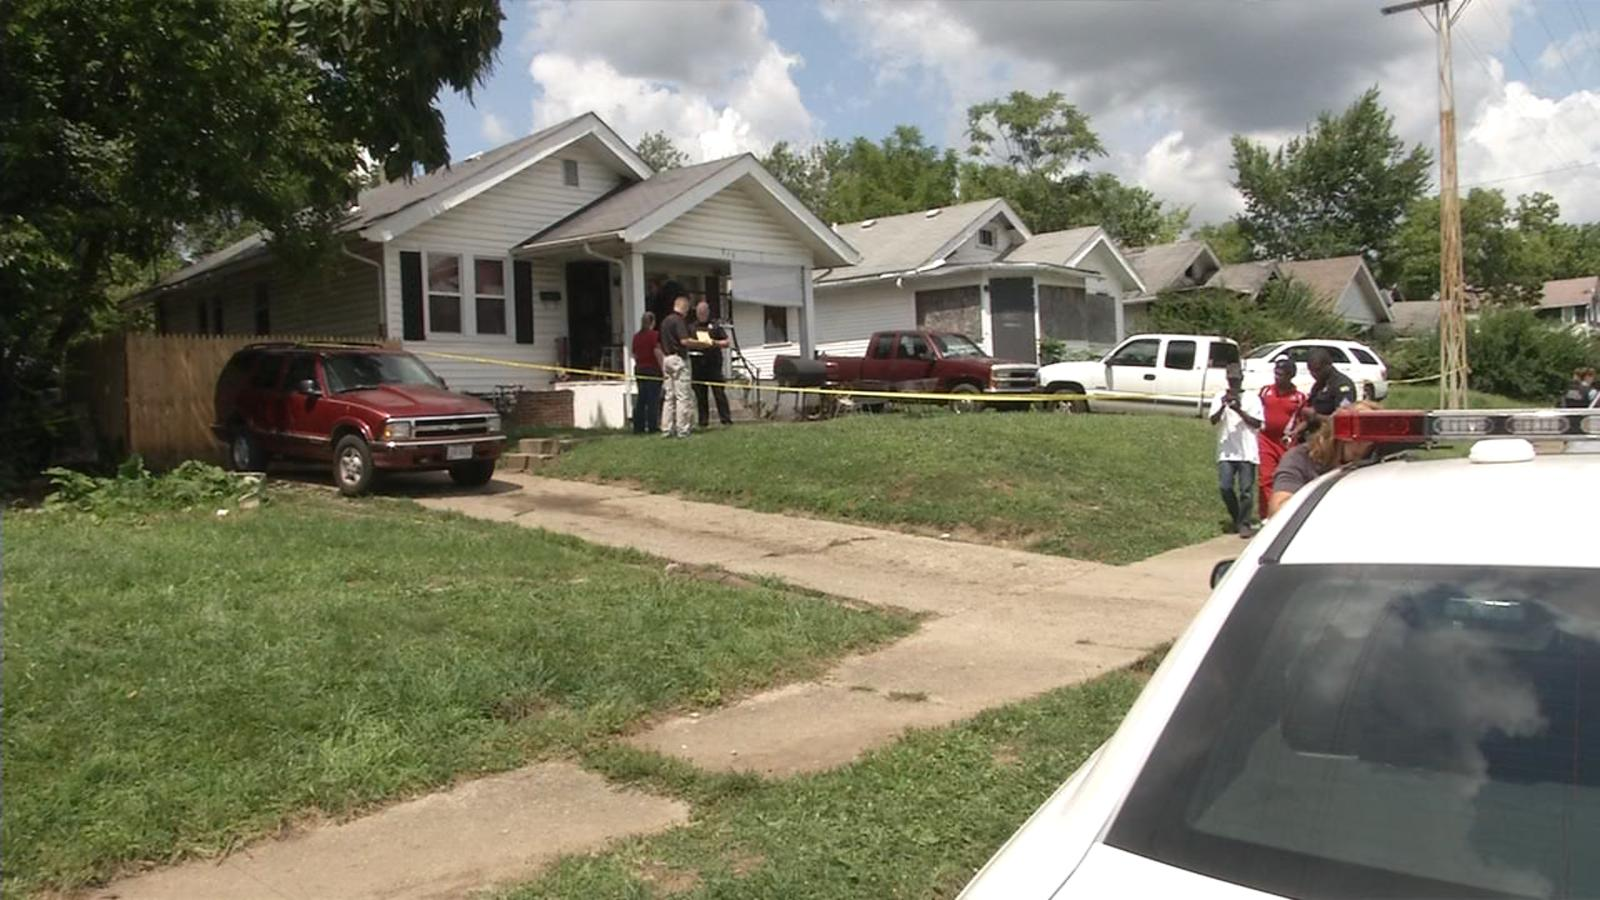 Coroner ID's woman found dead in a living room on Blanche Street (WKEF/WRGT)